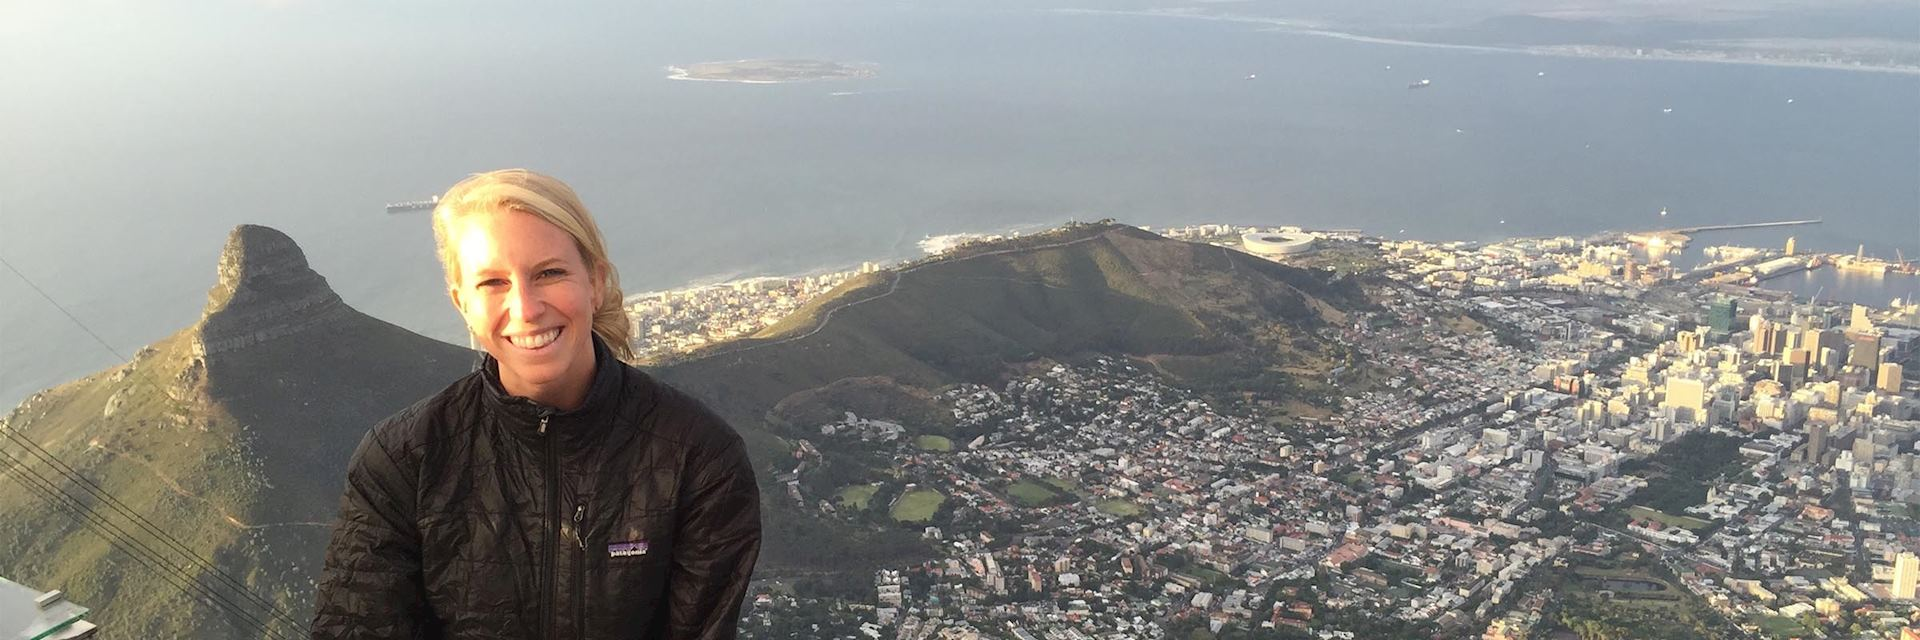 Hailey on top of Table Mountain overlooking Cape Town